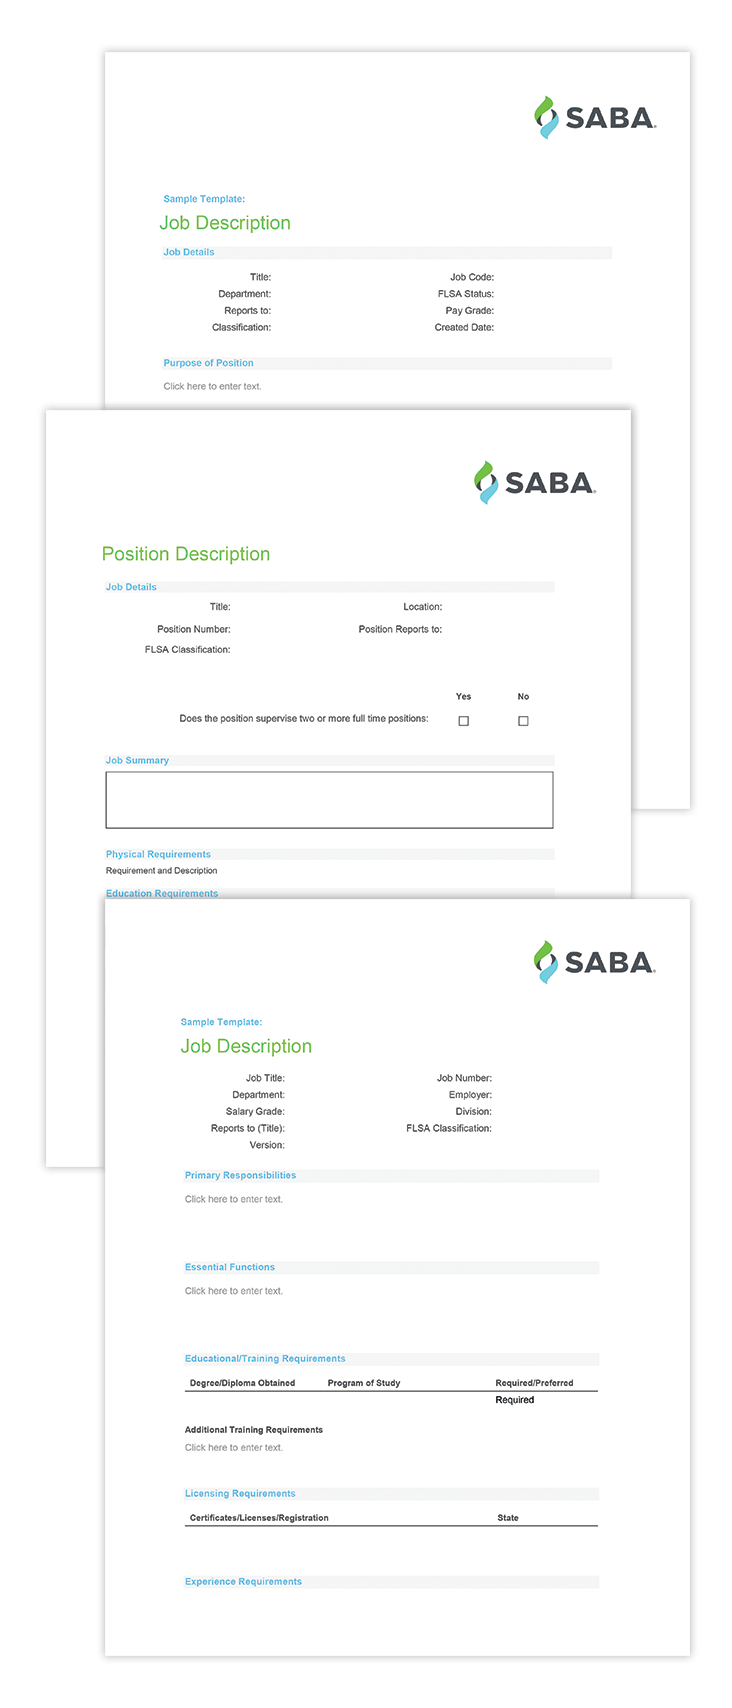 job description templates download リソース